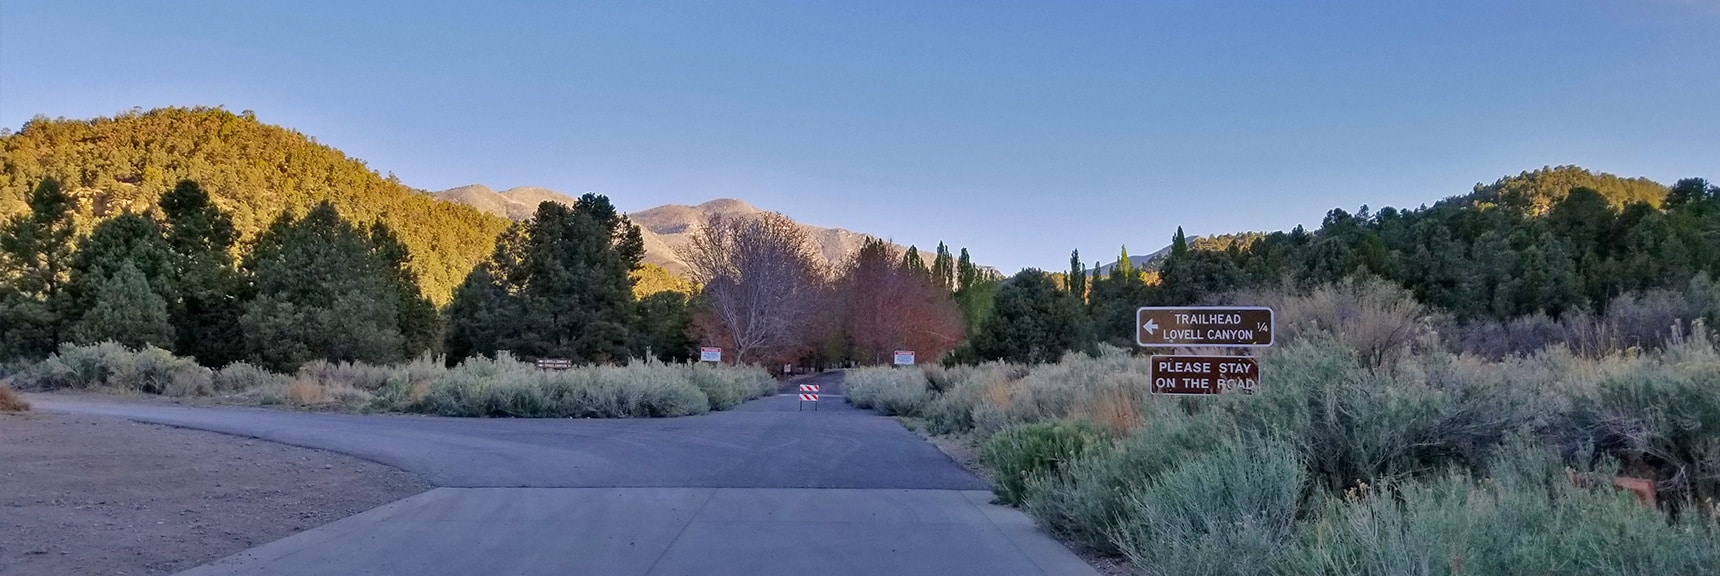 Parking Area at End of Lovell Canyon Rd. Trailhead 1/4th Mile. | Harris Mountain from Lovell Canyon Nevada